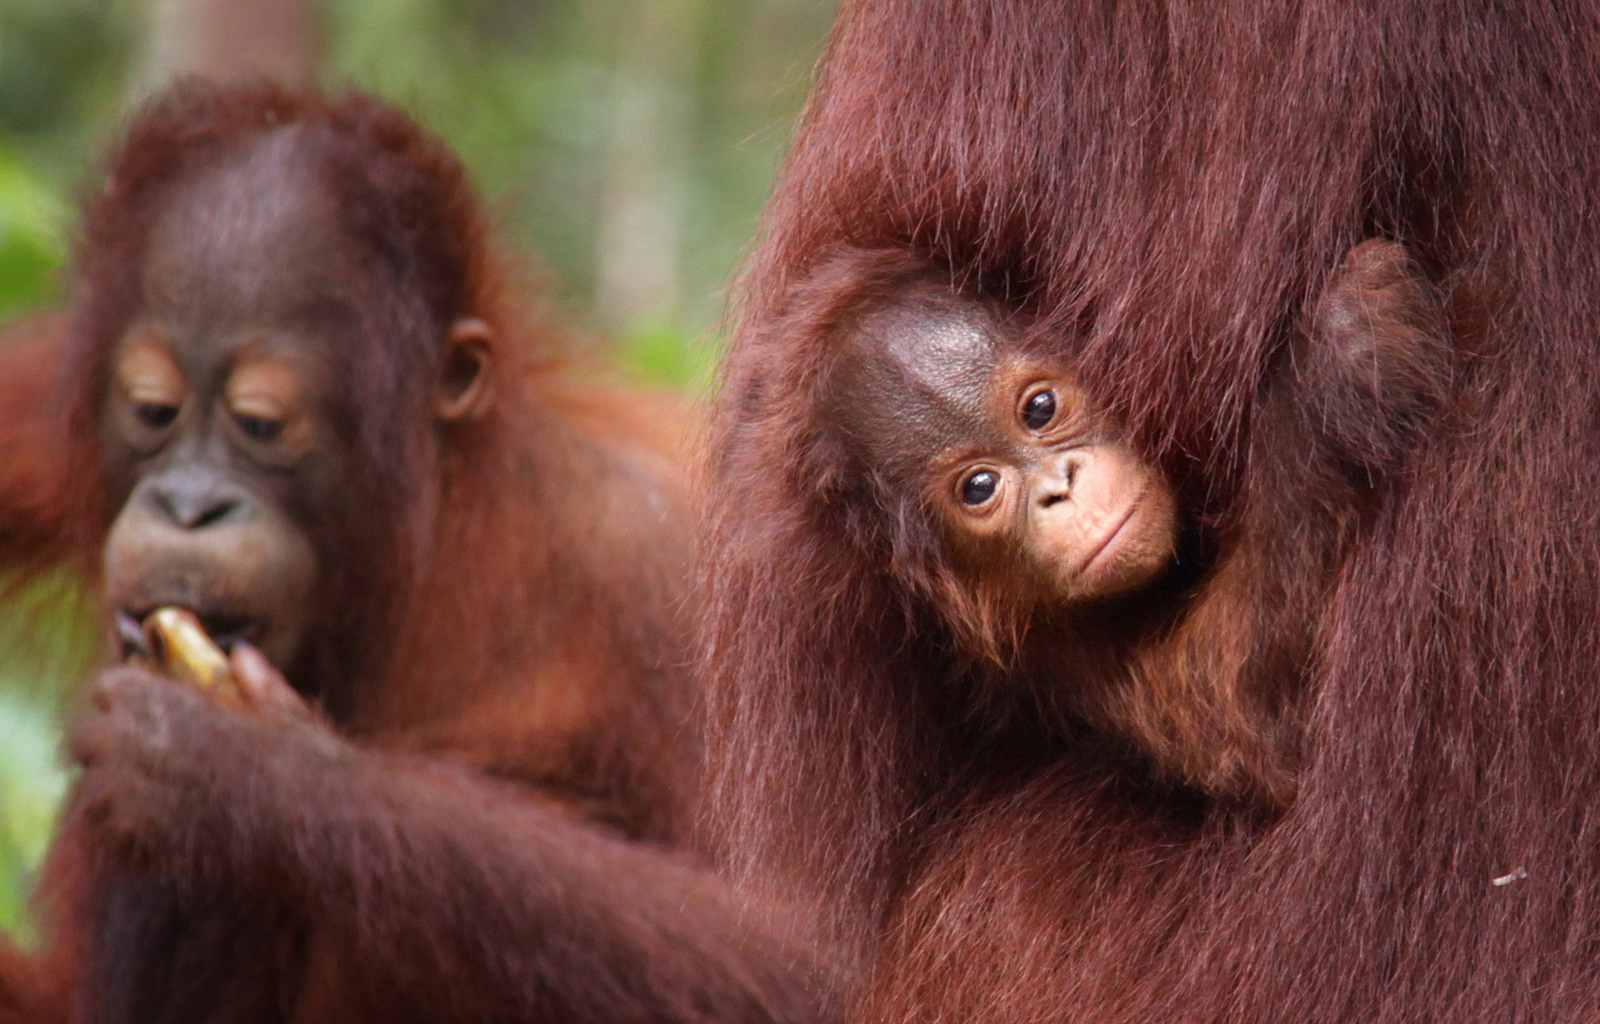 These Orangutans Just Can't Seem to Comprehend Why We Need Palm Oil